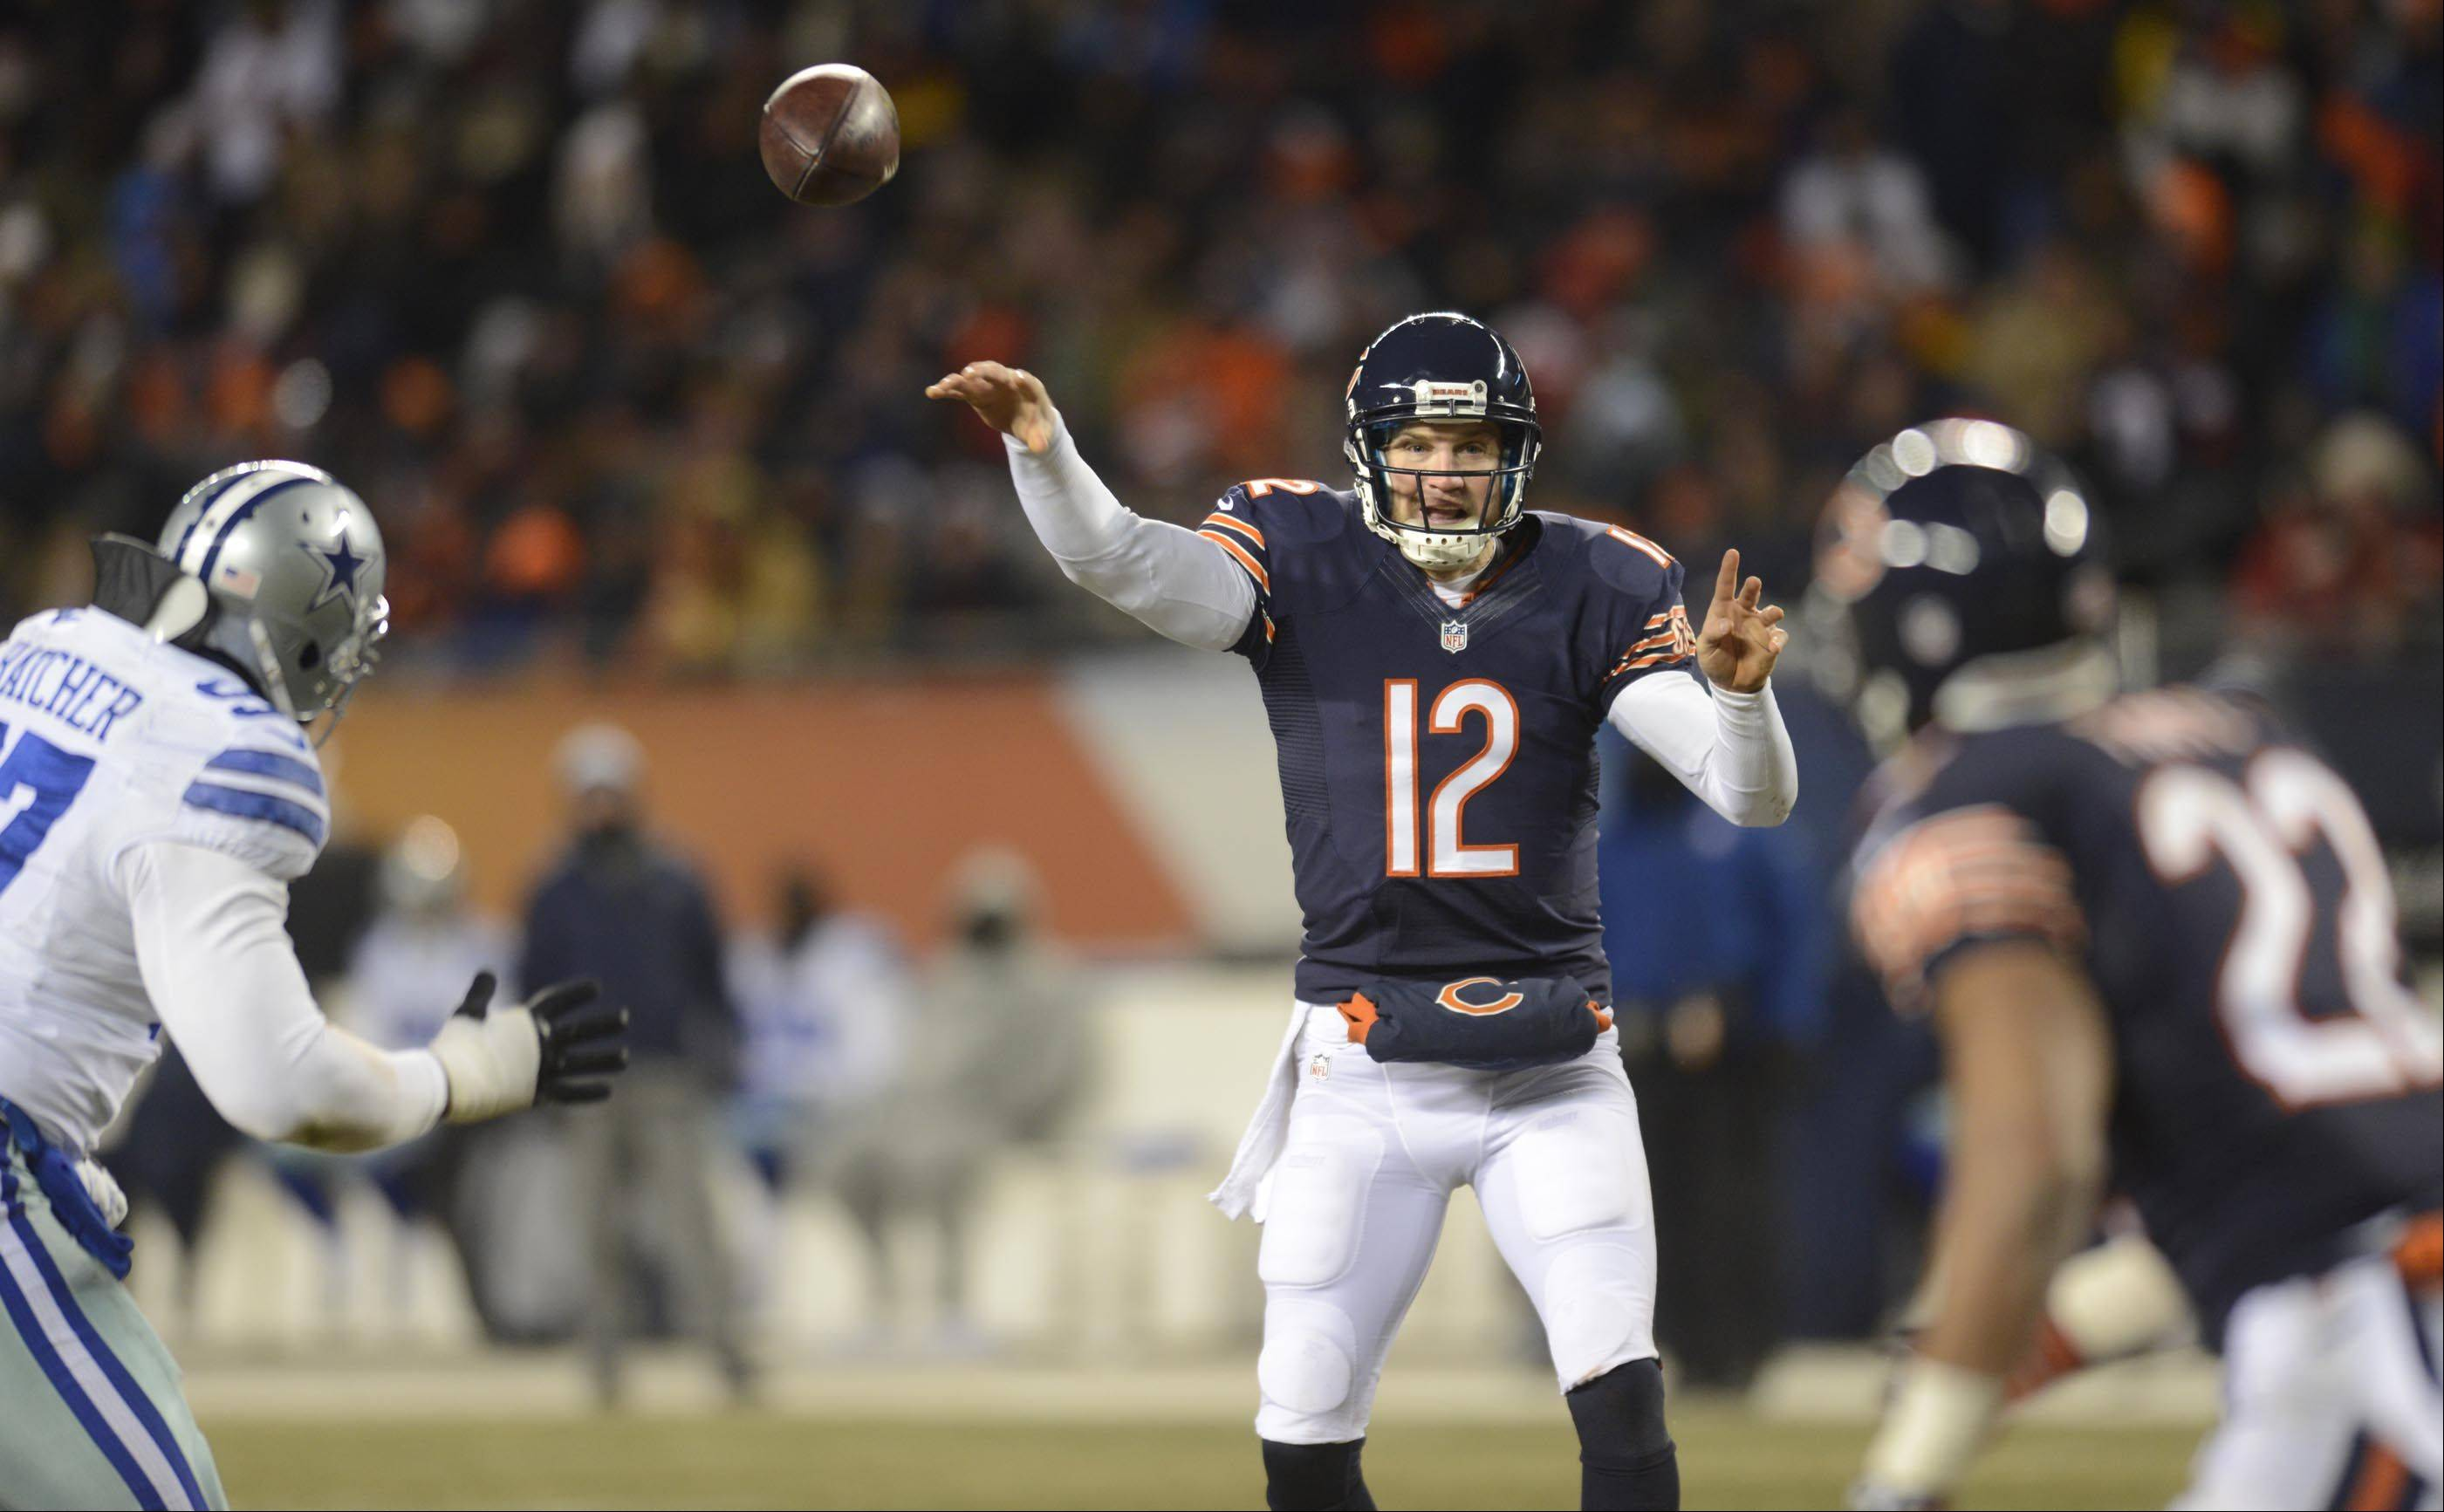 Chicago Bears quarterback Josh McCown throws to Matt Forte.